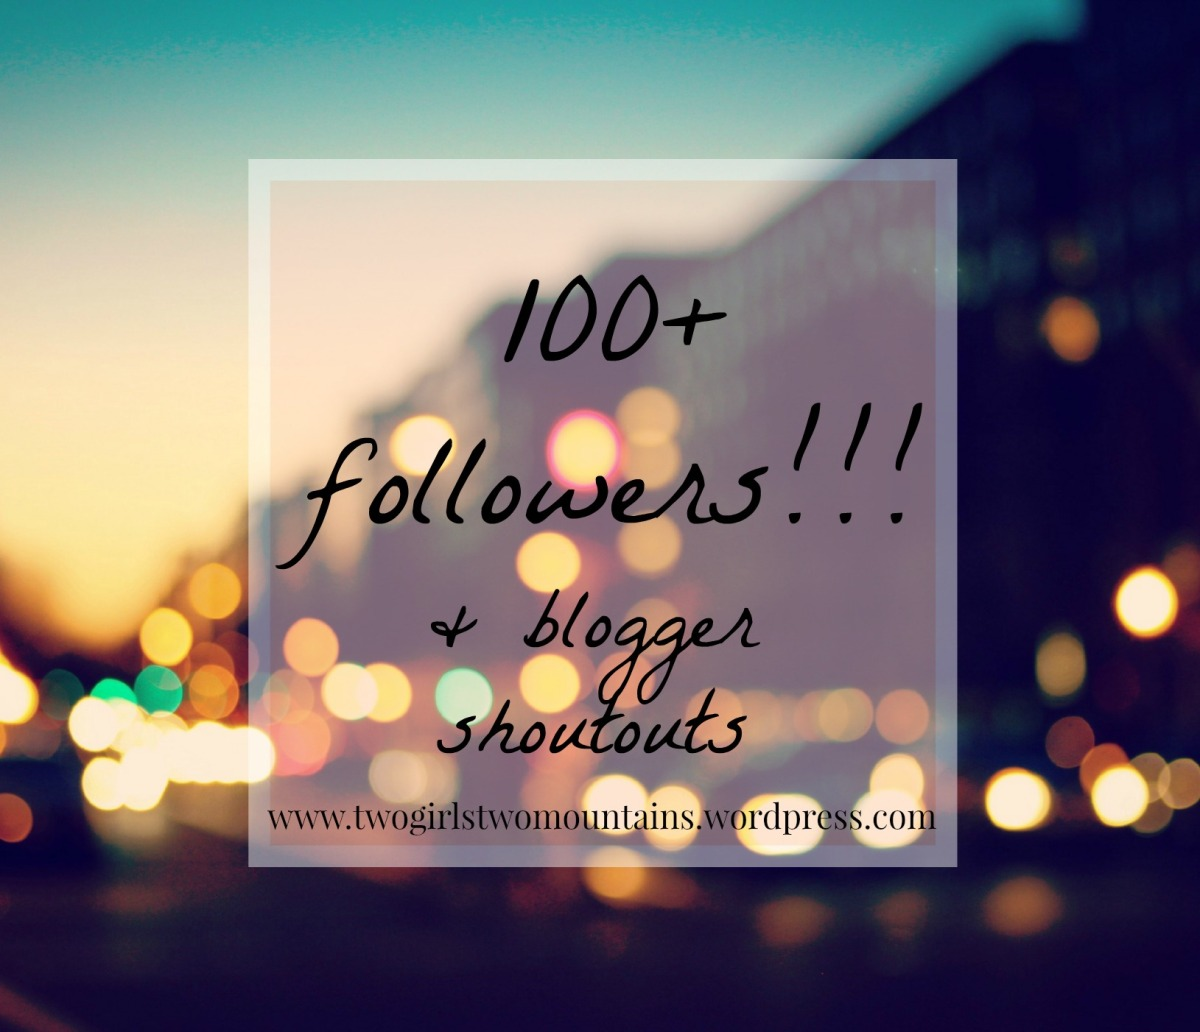 100 followers!!! (and blogger shoutouts)